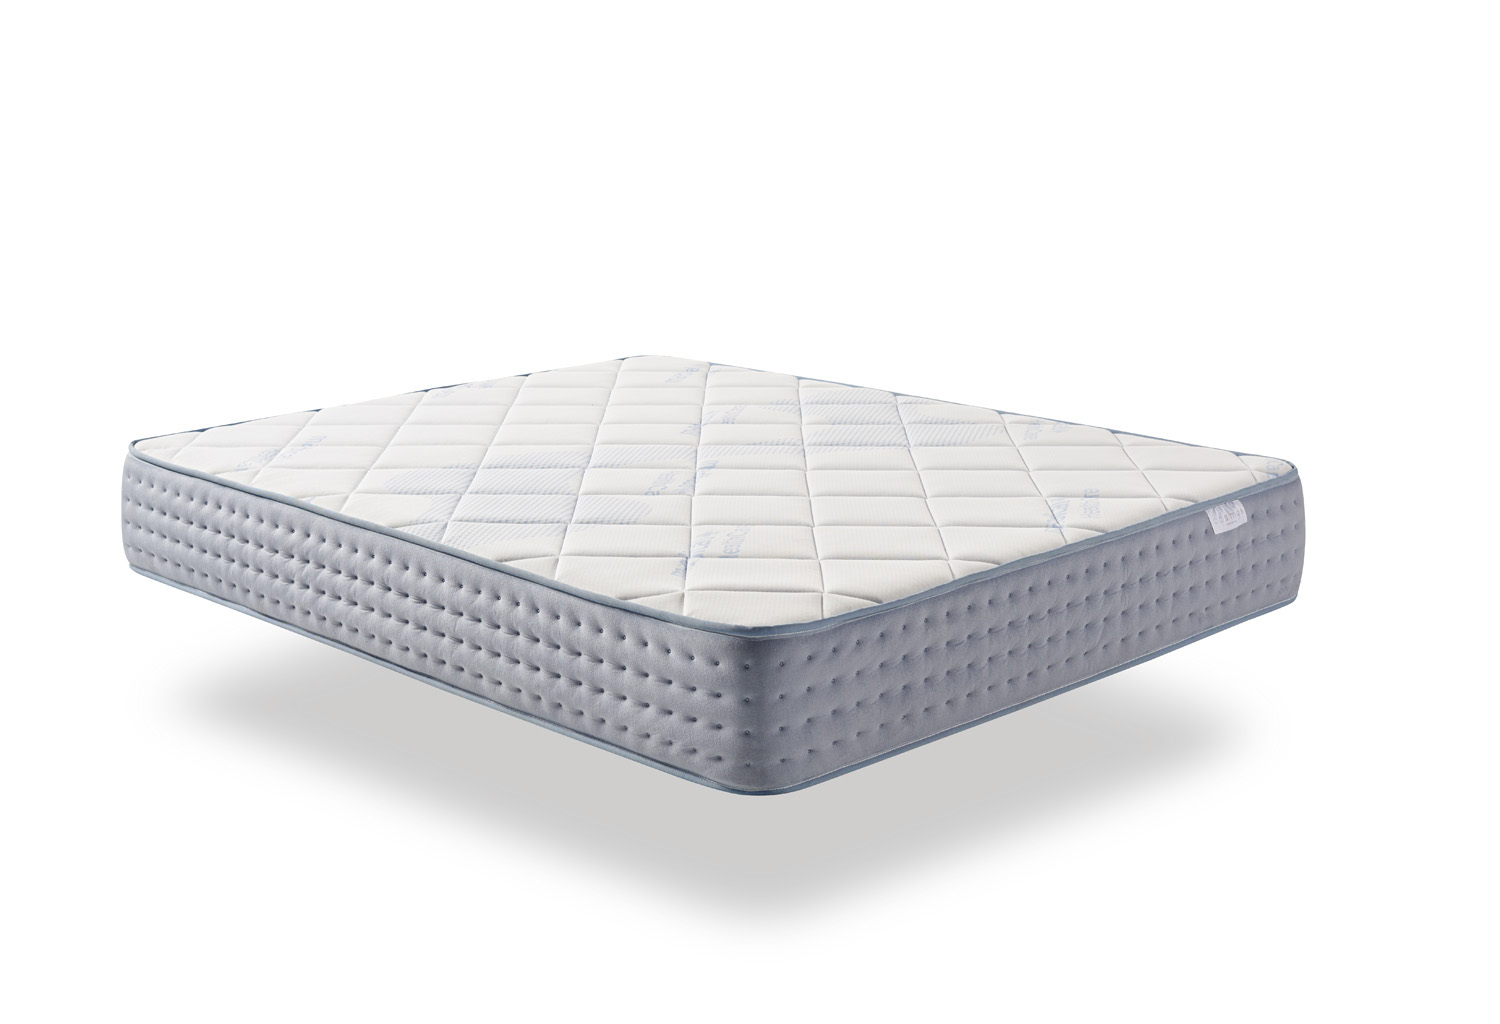 Matelas 135x190 Matelas Gel Care Cosmos Bedding Gamme Active Thermo Régulant